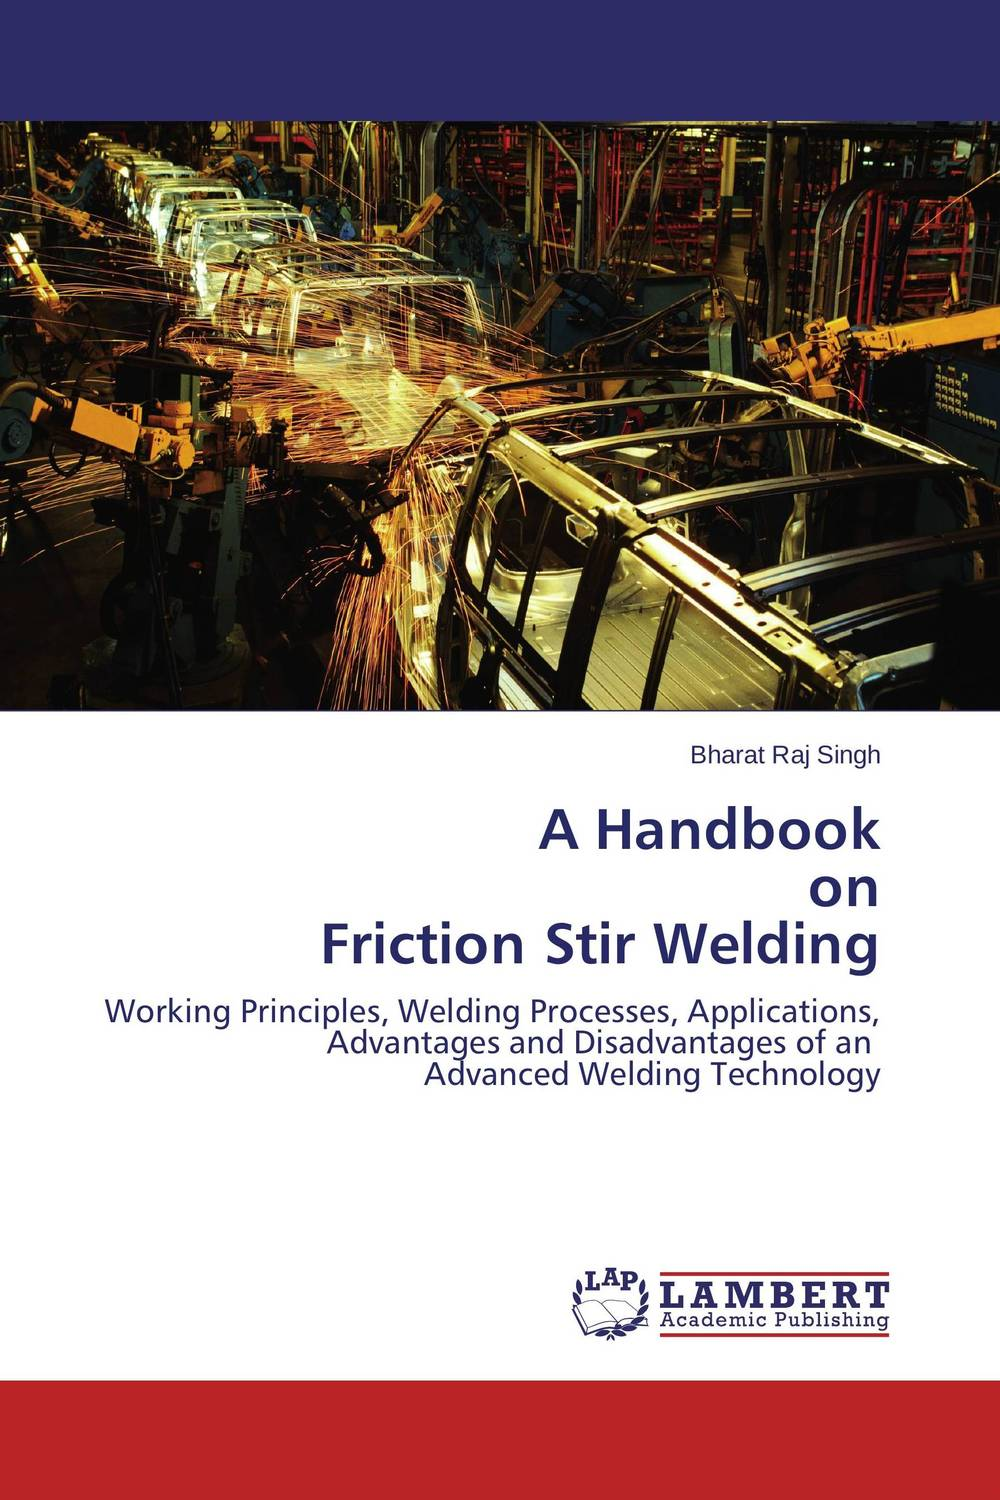 A Handbook on Friction Stir Welding new technology free post welding machine helmet shading welding mask cap for the welding machine chrome polished